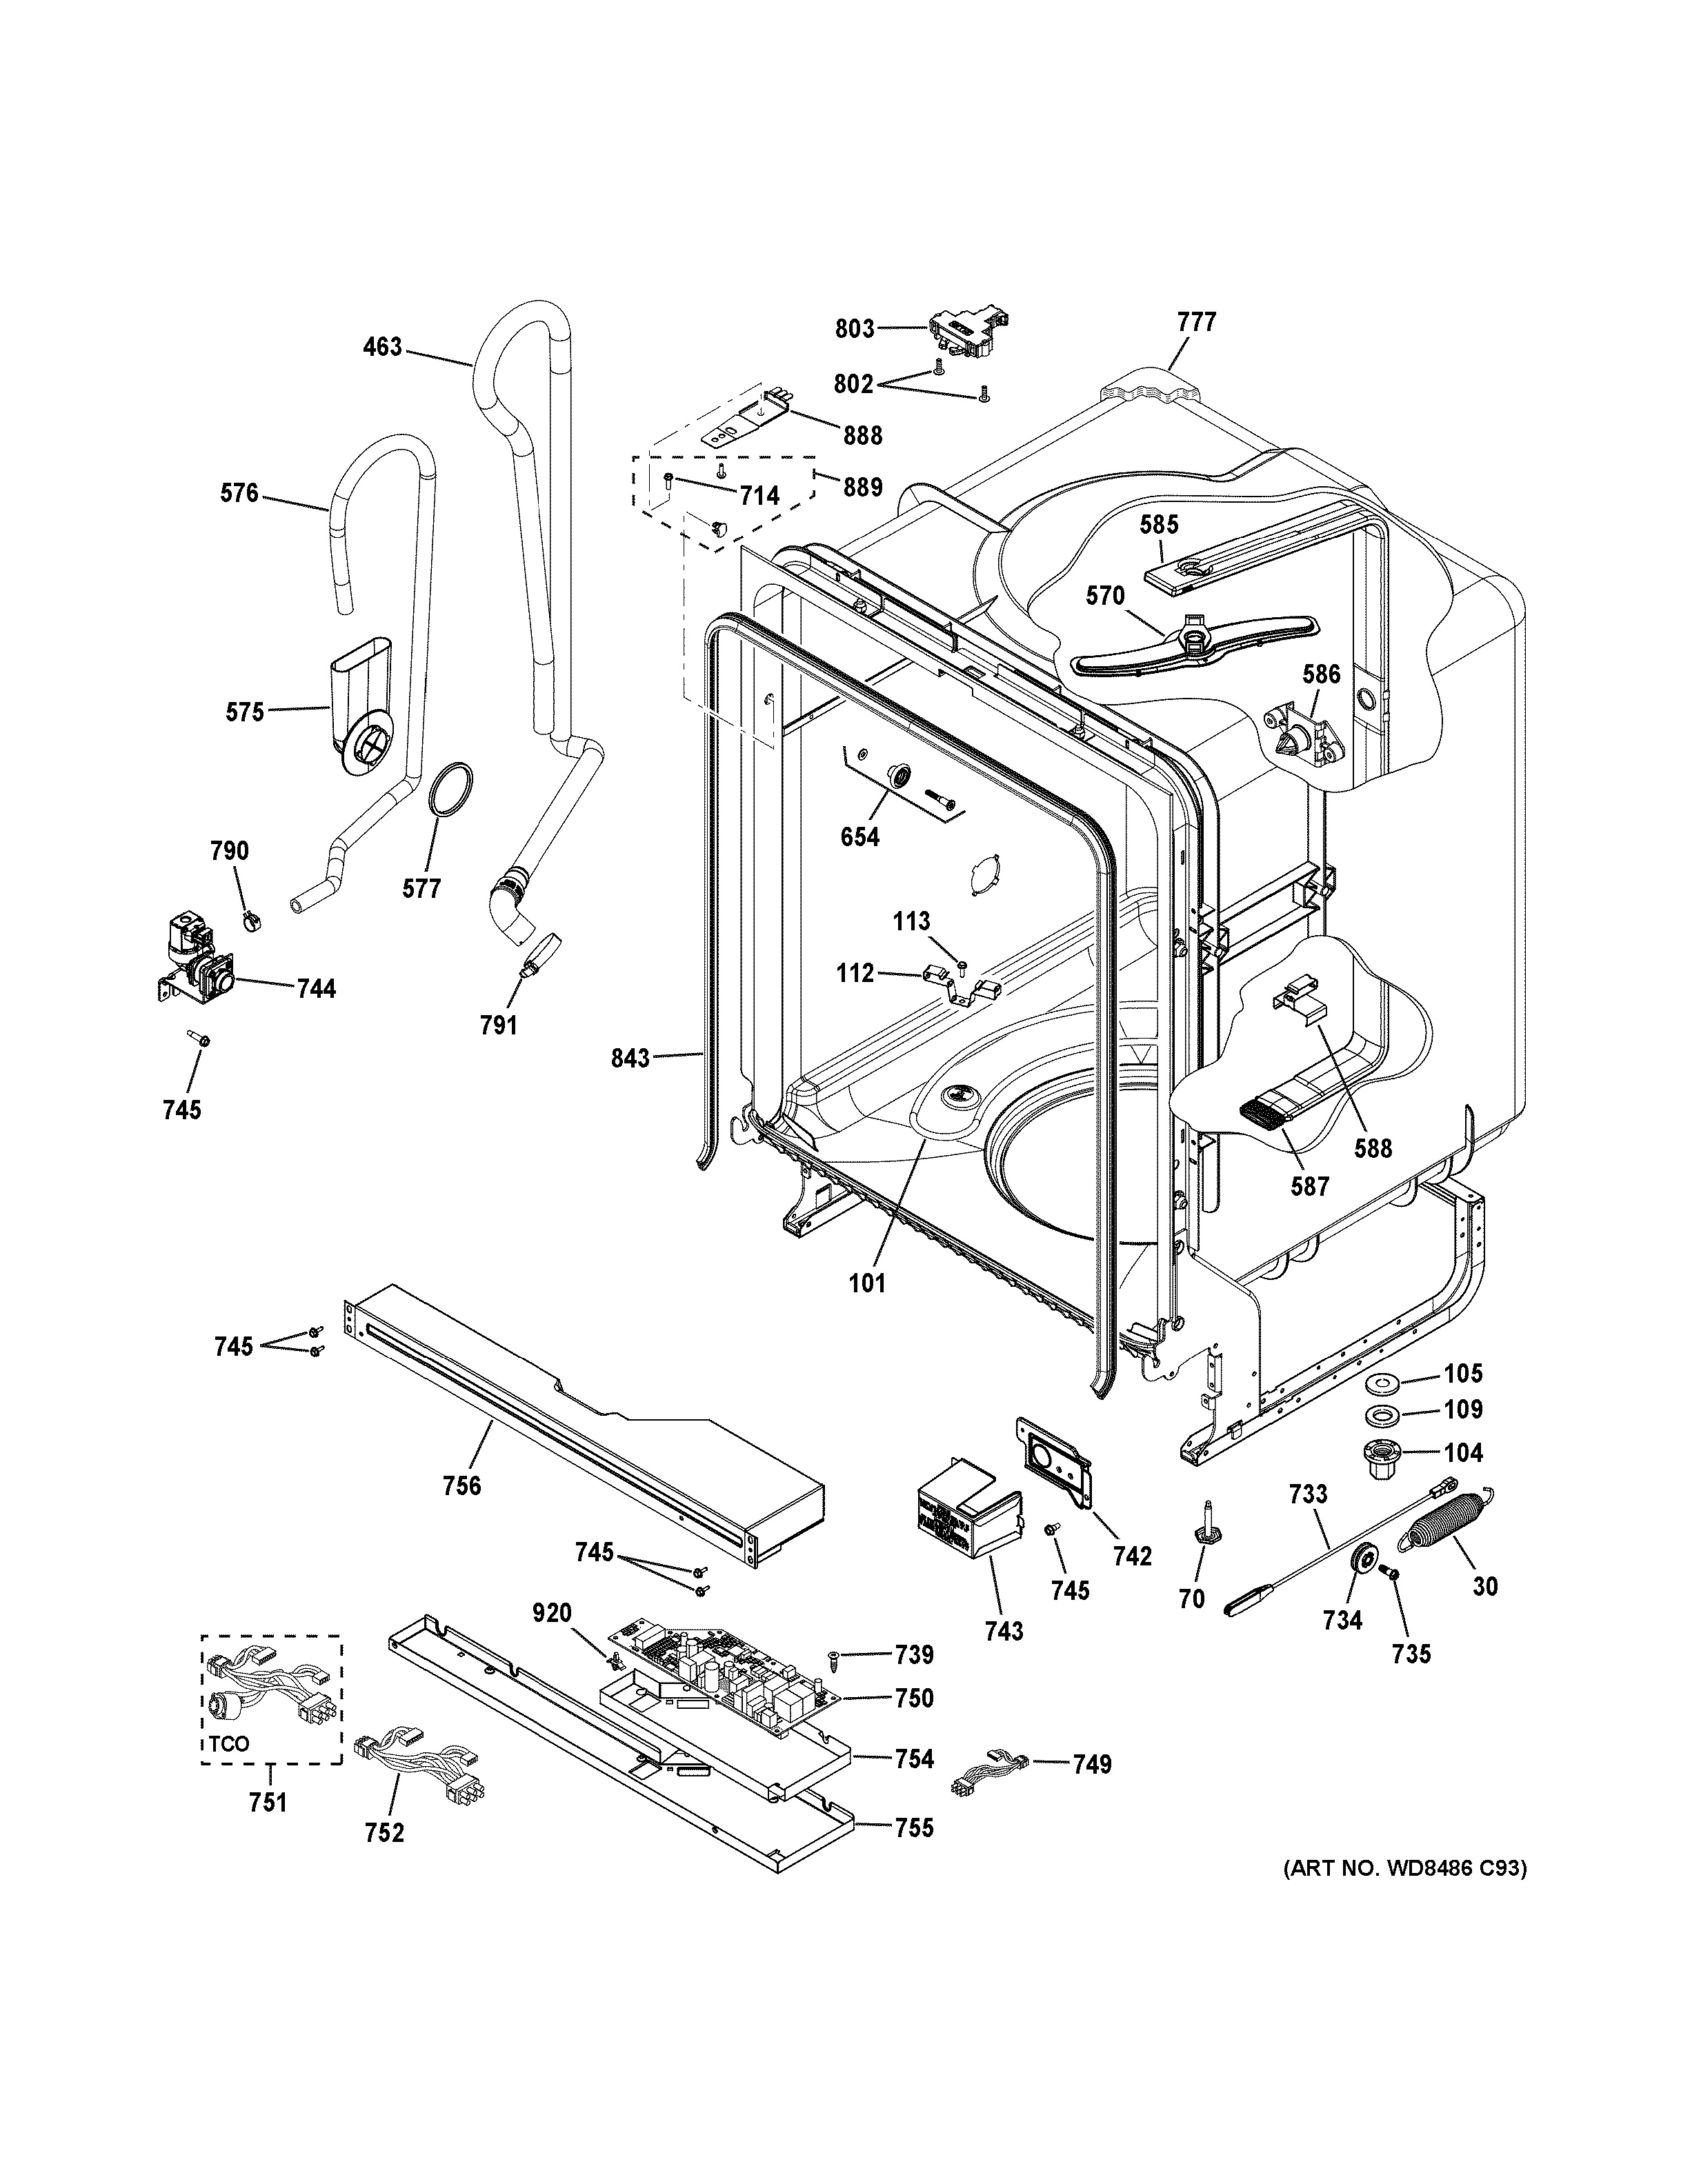 35 Asko Dishwasher Parts Diagram